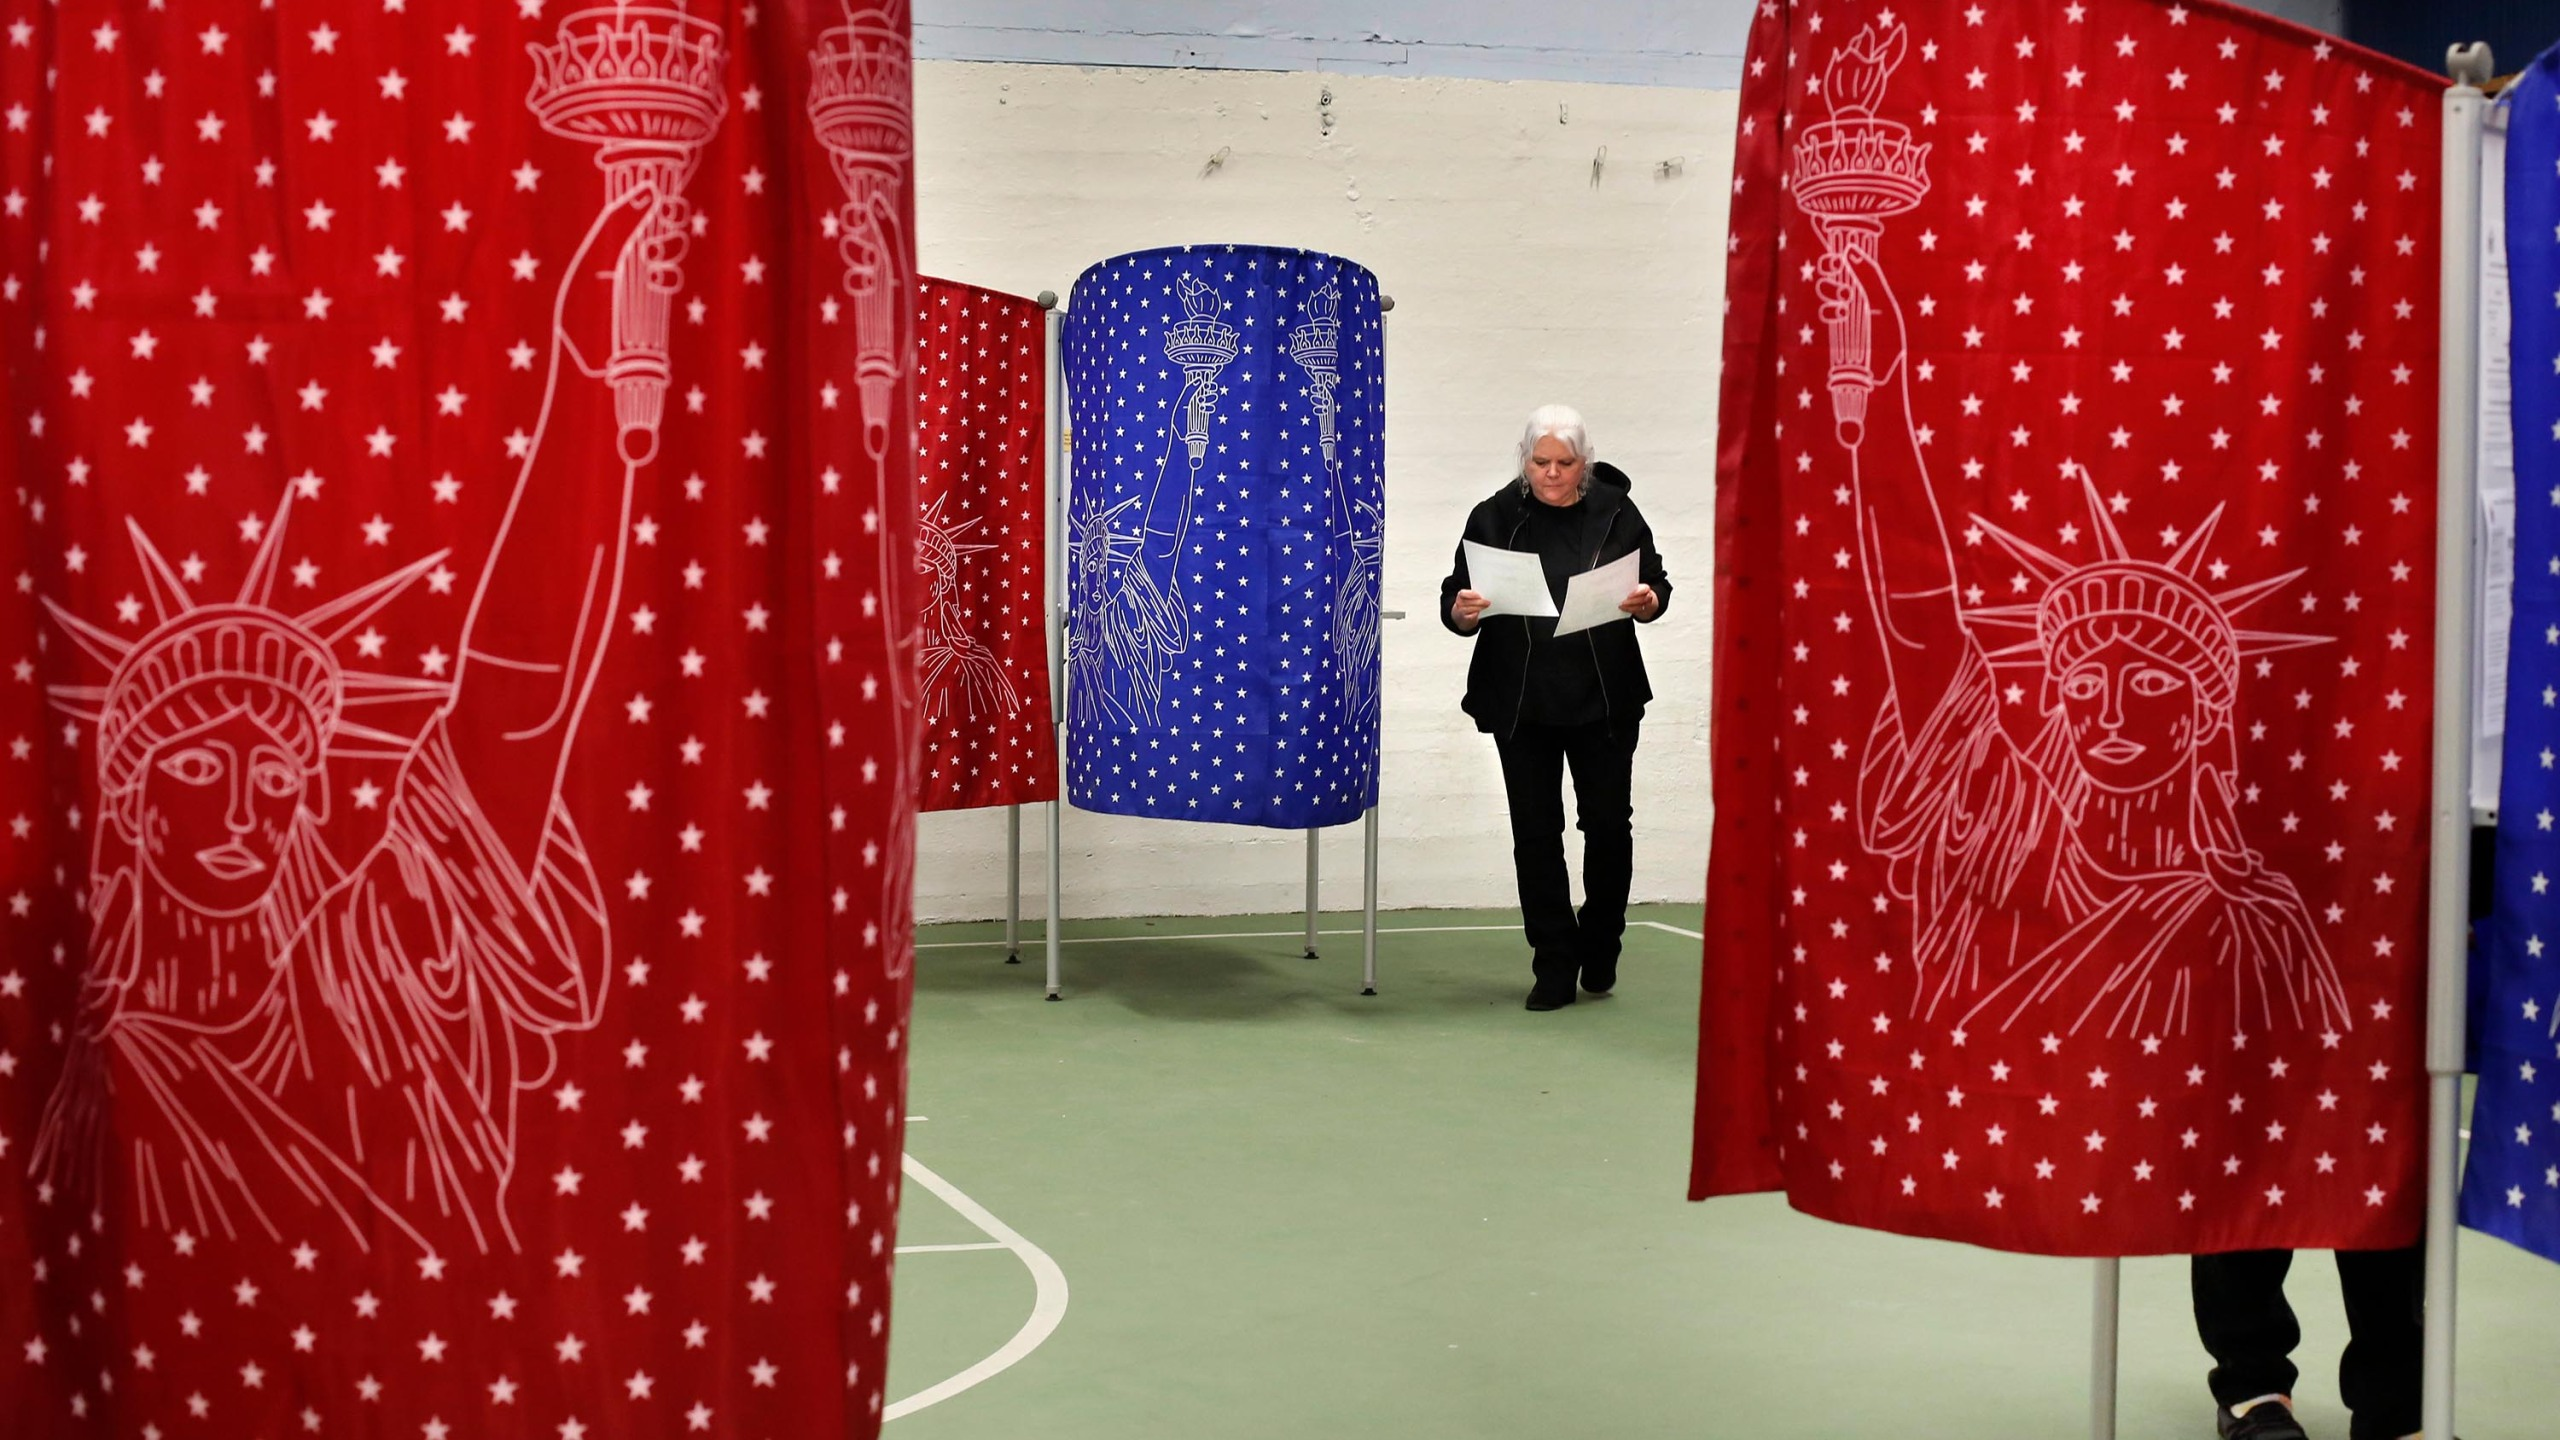 Louise Wilcox checks her ballots after coming out of a booth while voting in the primary election, Tuesday, March 3, 2020, in Mechanic Falls, Maine. (AP Photo/Robert F. Bukaty)